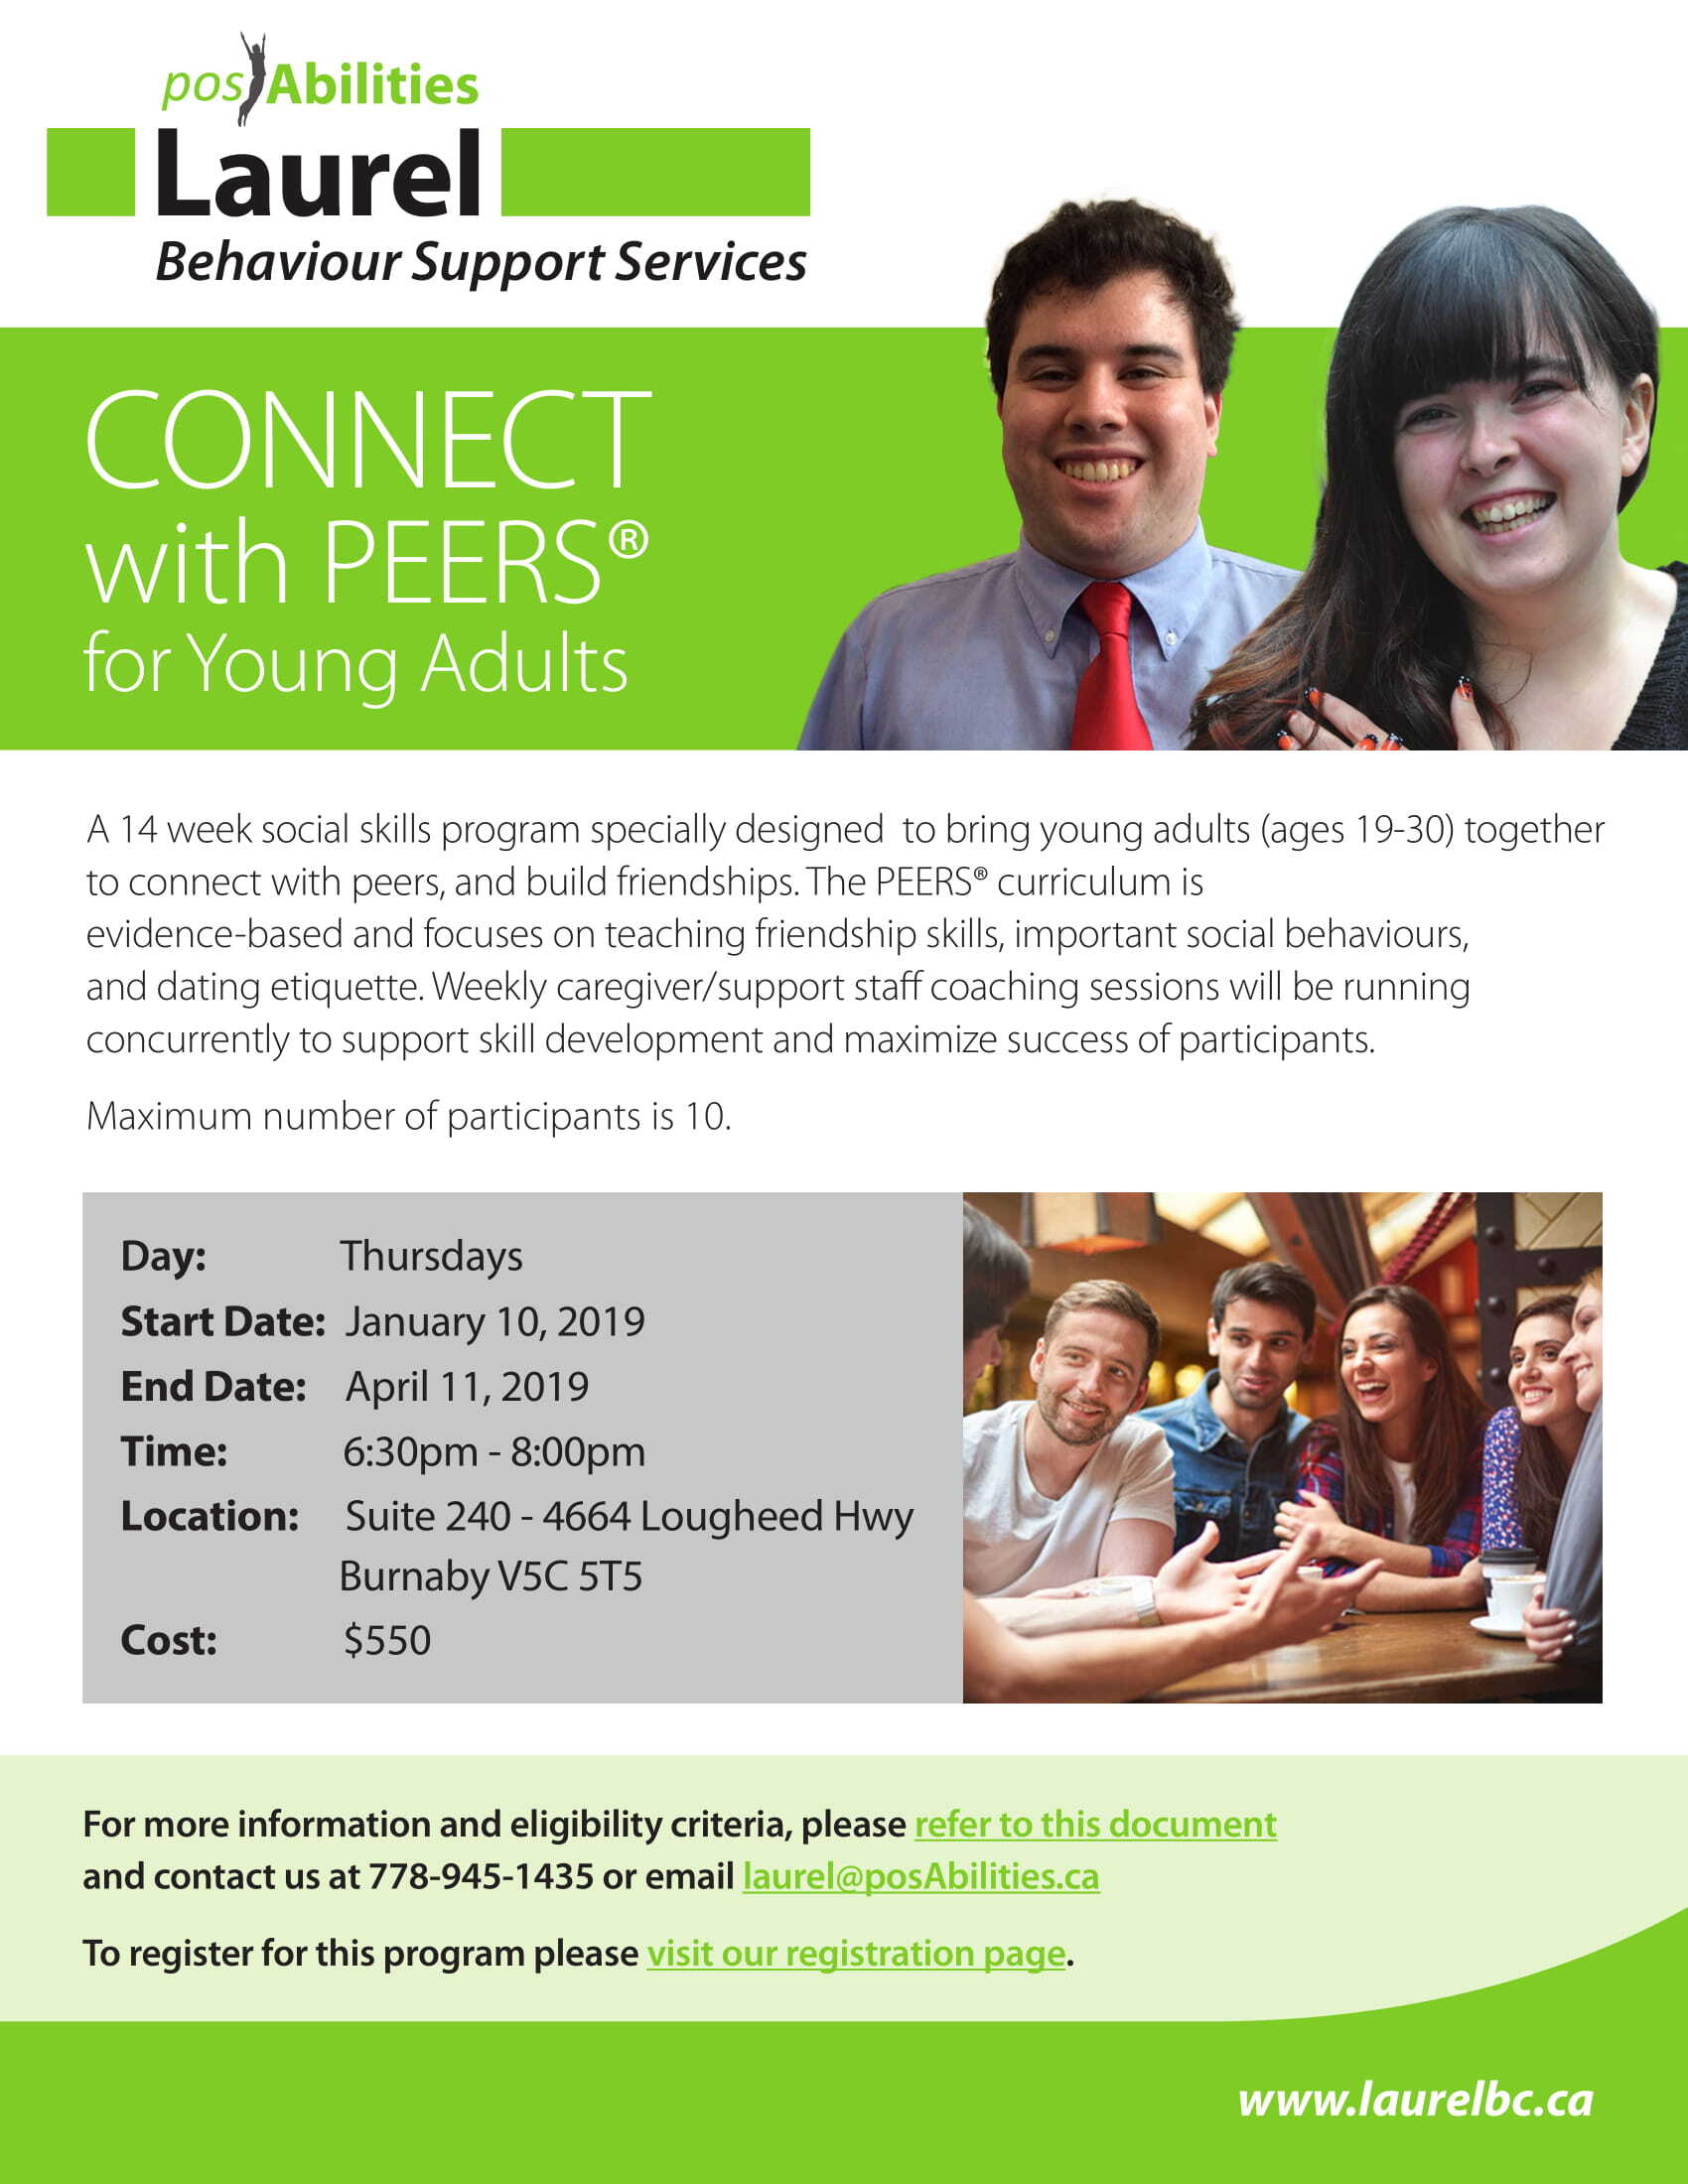 CONNECT with PEERS for Young Adults